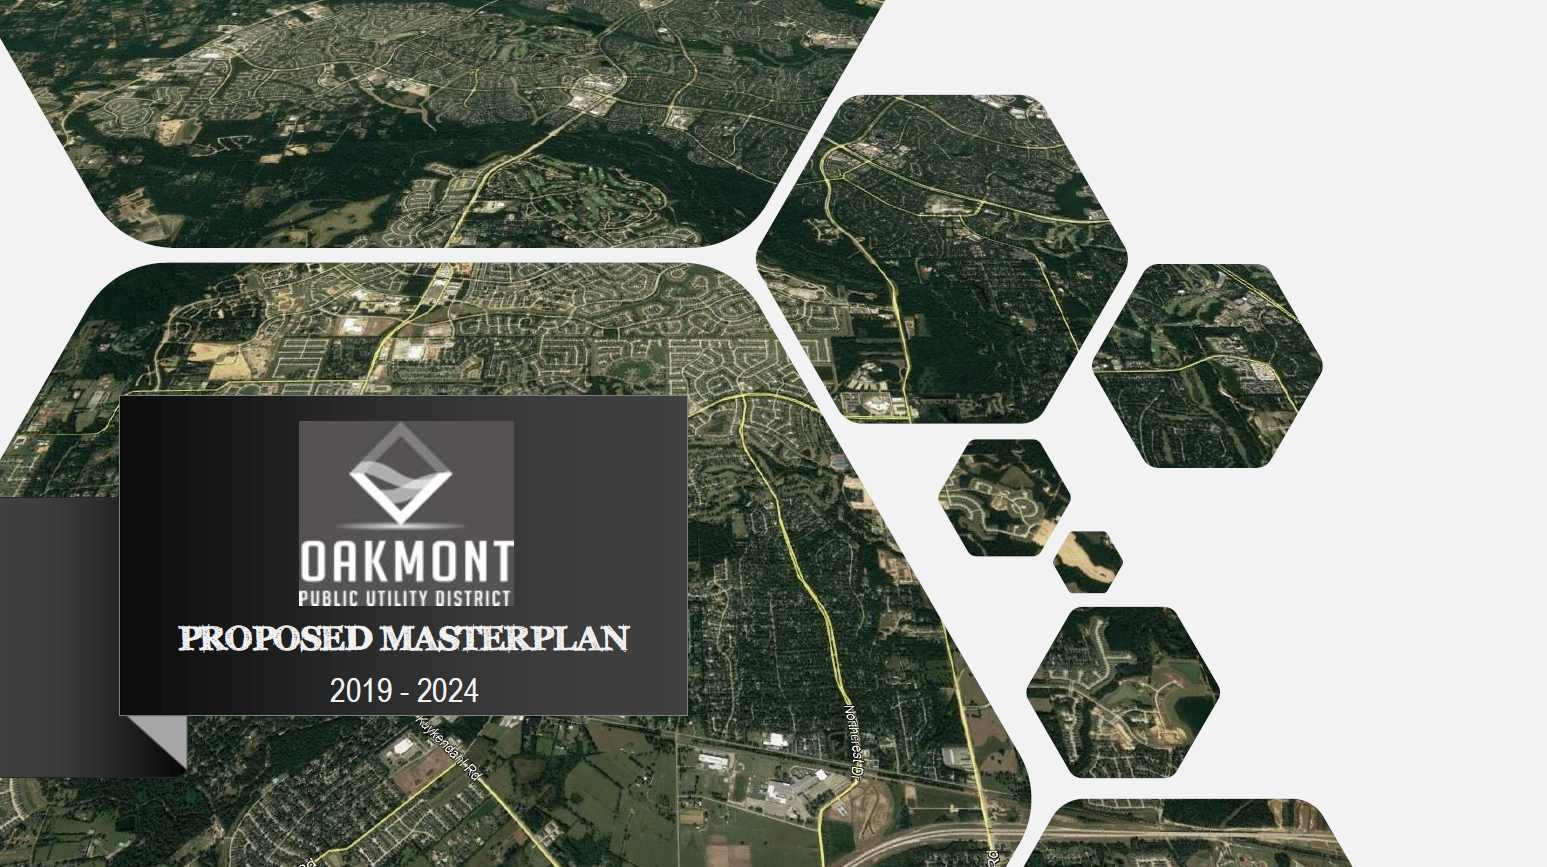 Proposed Master Plan 2019-2024